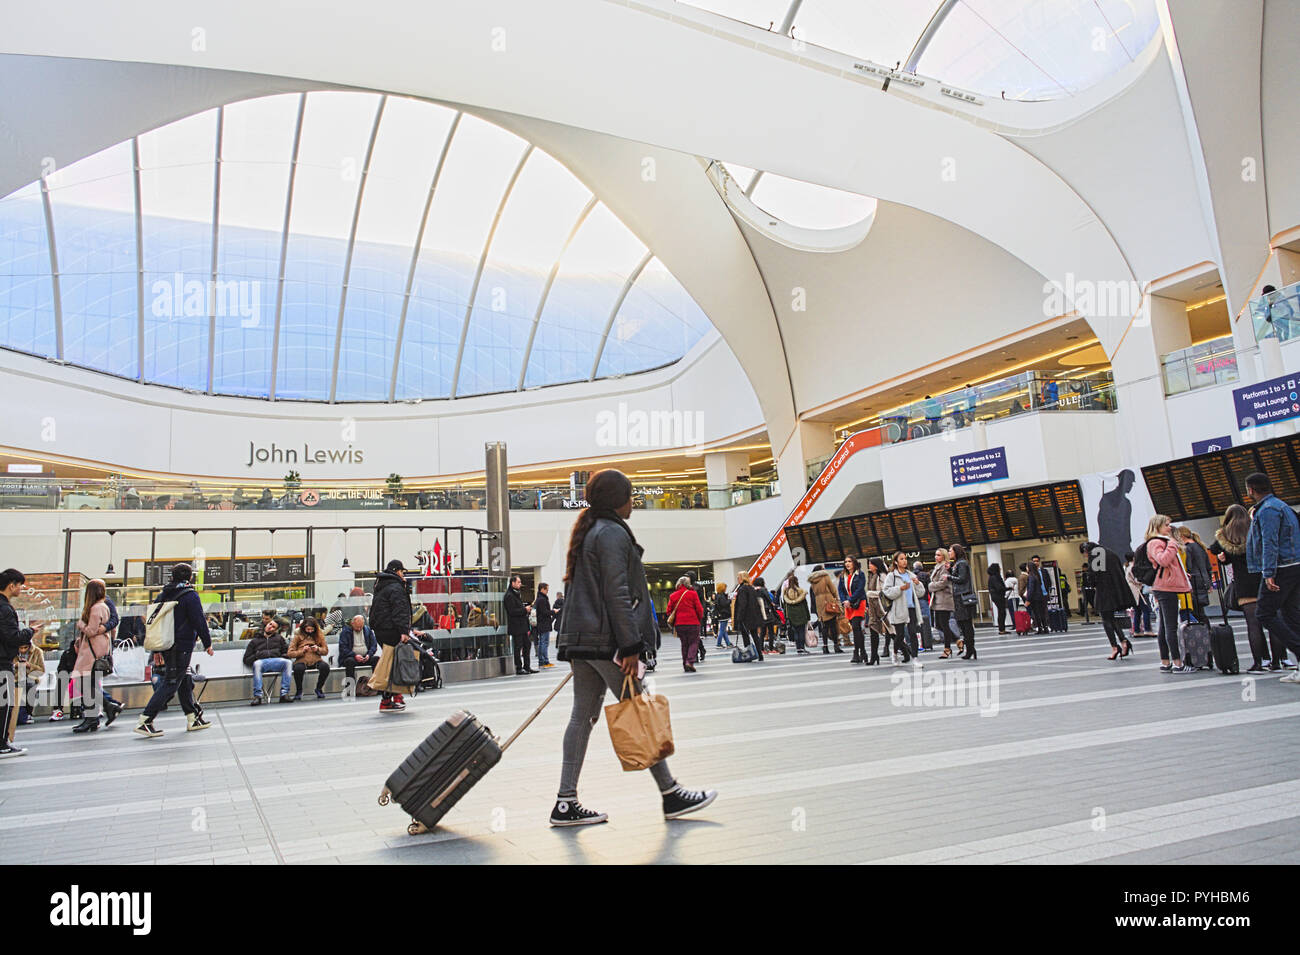 Birmingham New Street Station. Woman with travel suitcase. People waiting for trains. Shop John Lewis. - Stock Image